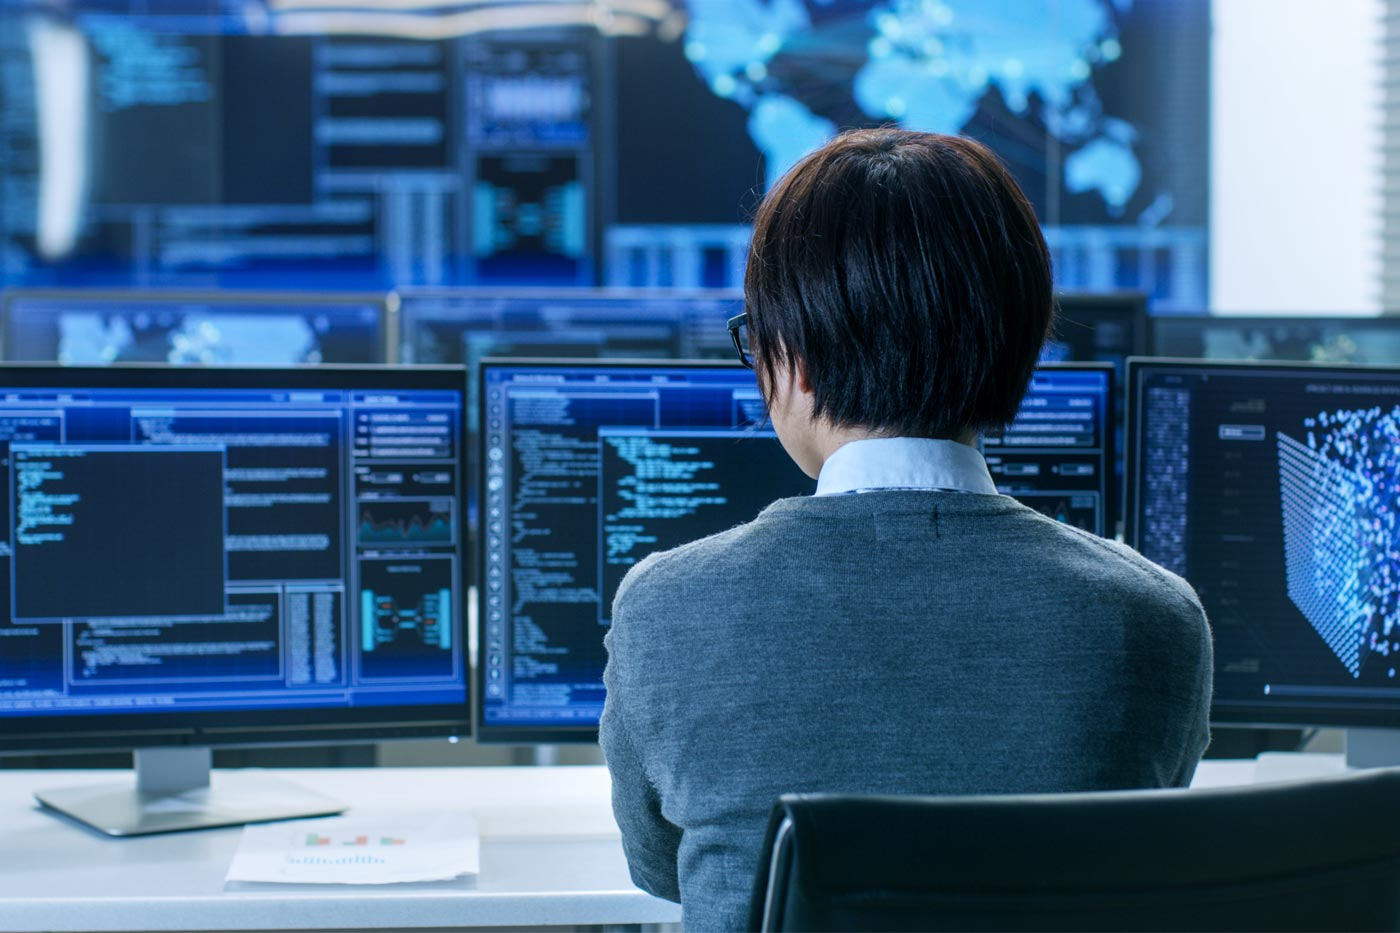 cybersecurity-room-closeup